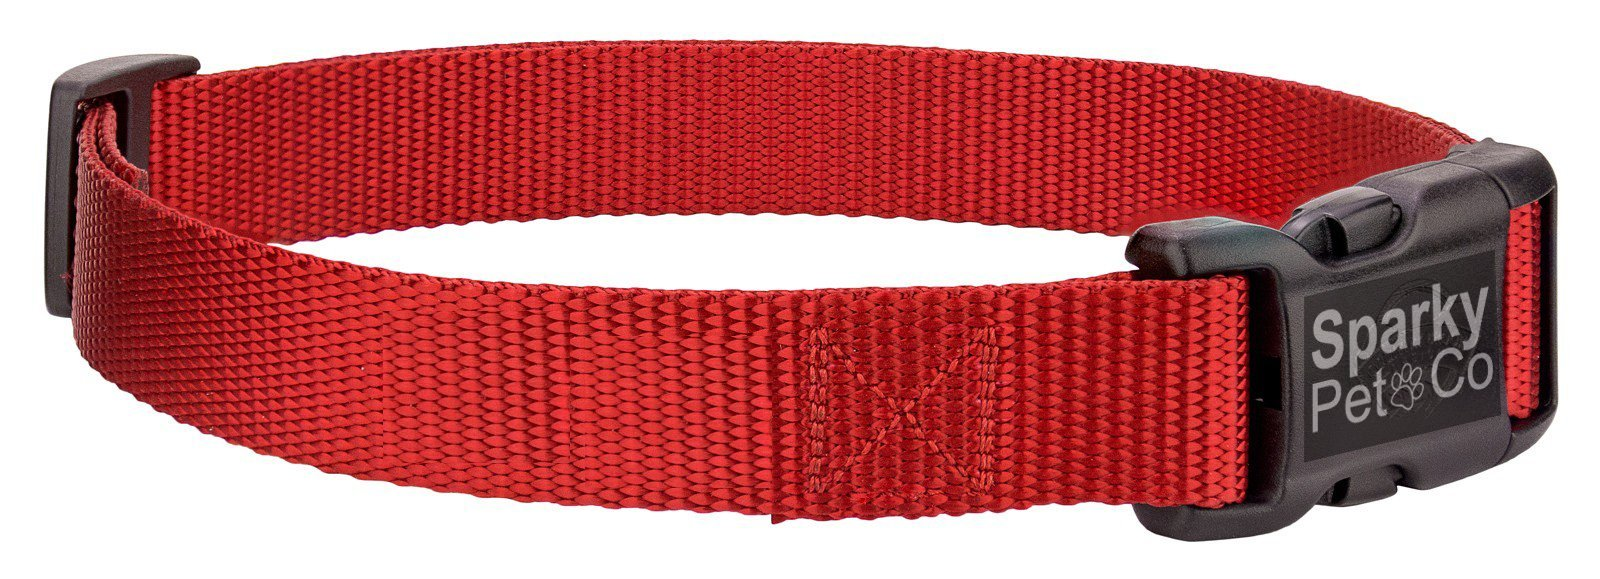 "Sparky PetCo 3/4"" Solid Nylon PetSafe Compatible Replacement Strap For Petsaf..."